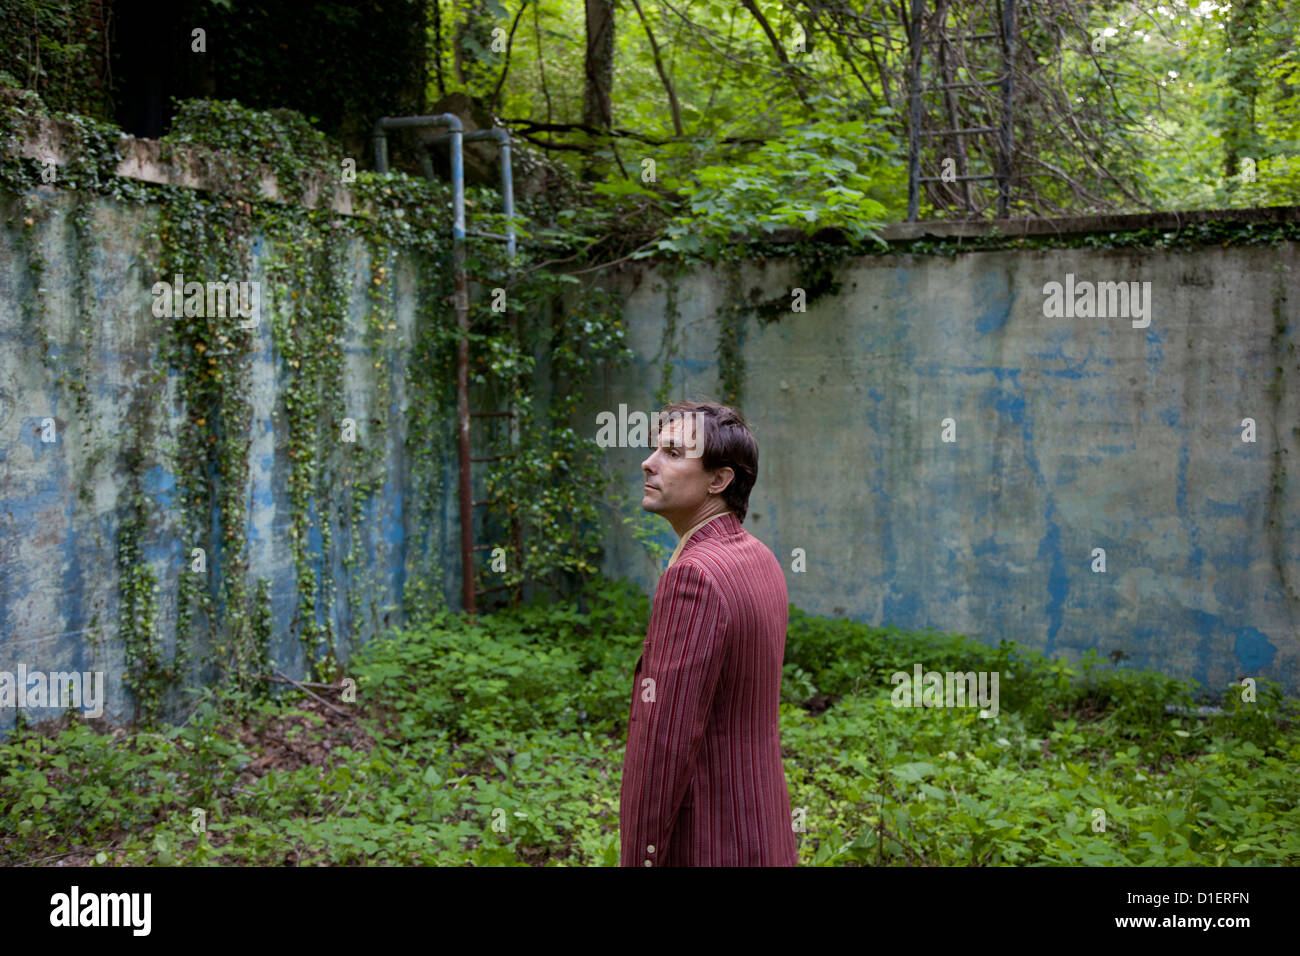 Man in Overgrown Abandoned Place - Stock Image